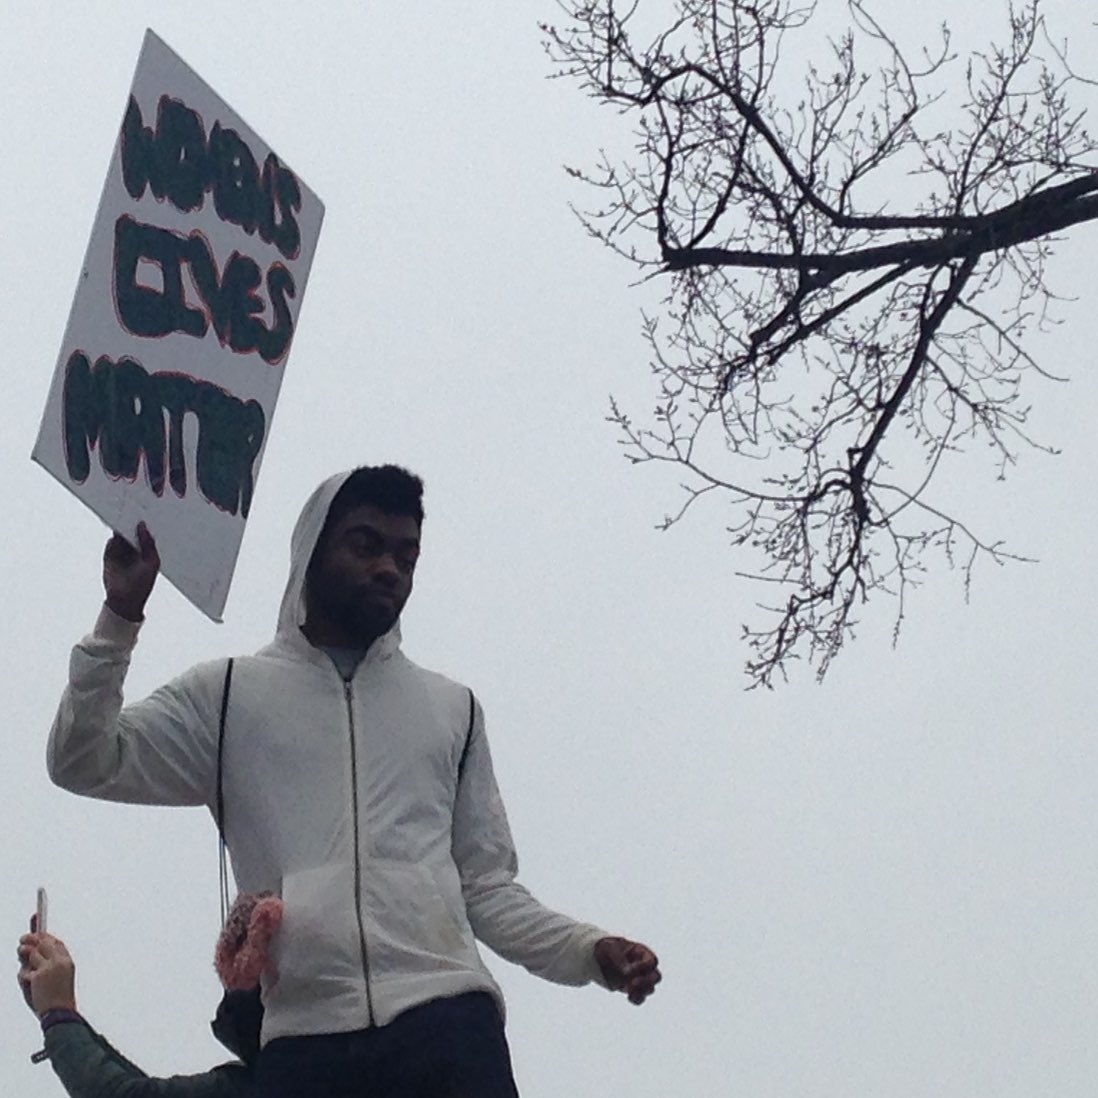 A young black man holds up a sign that says Women's lives matter.